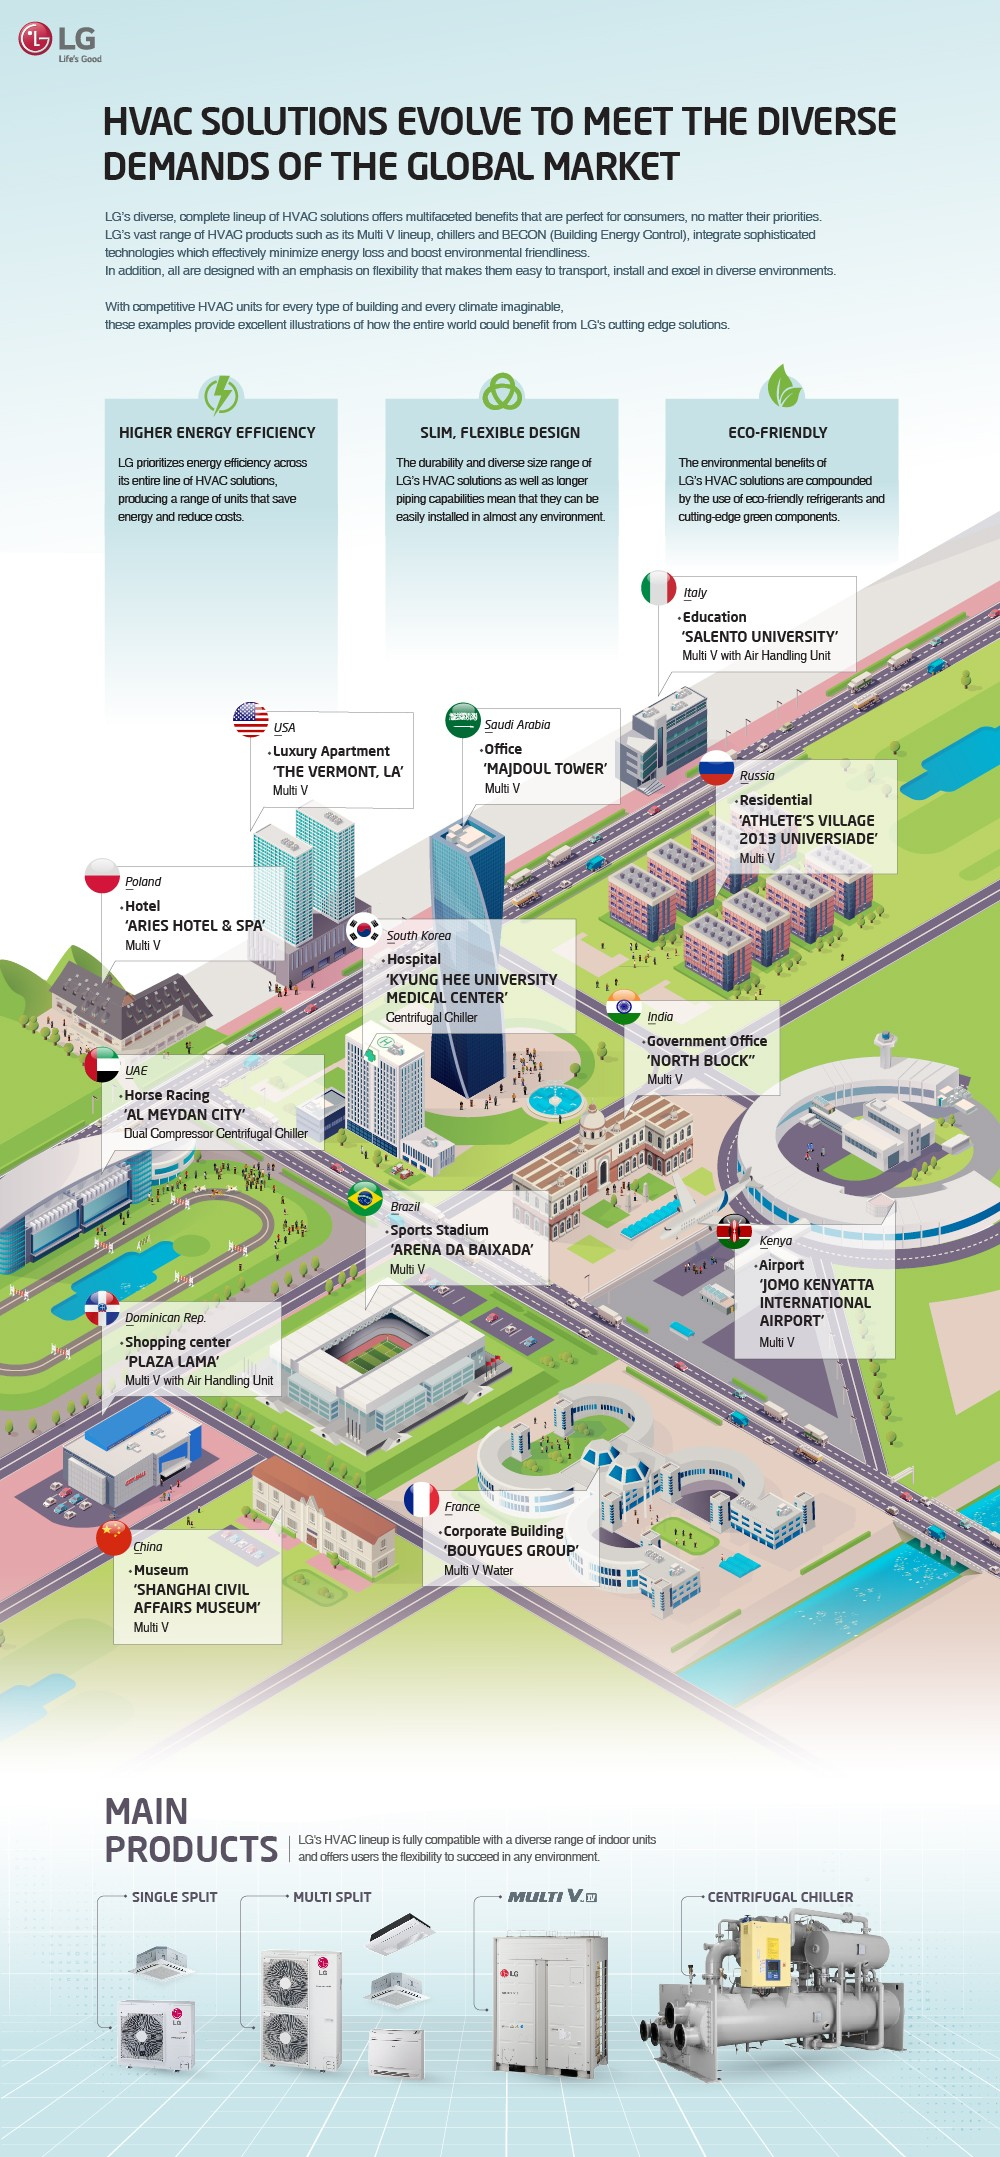 """The """"HVAC Solutions Evolve to Meet the Diverse Demands of the Global Market"""" infographic shows the benefits of LG's HVAC solutions such as energy efficiency, design compatibility and eco-friendliness, while introducing global installation cases."""